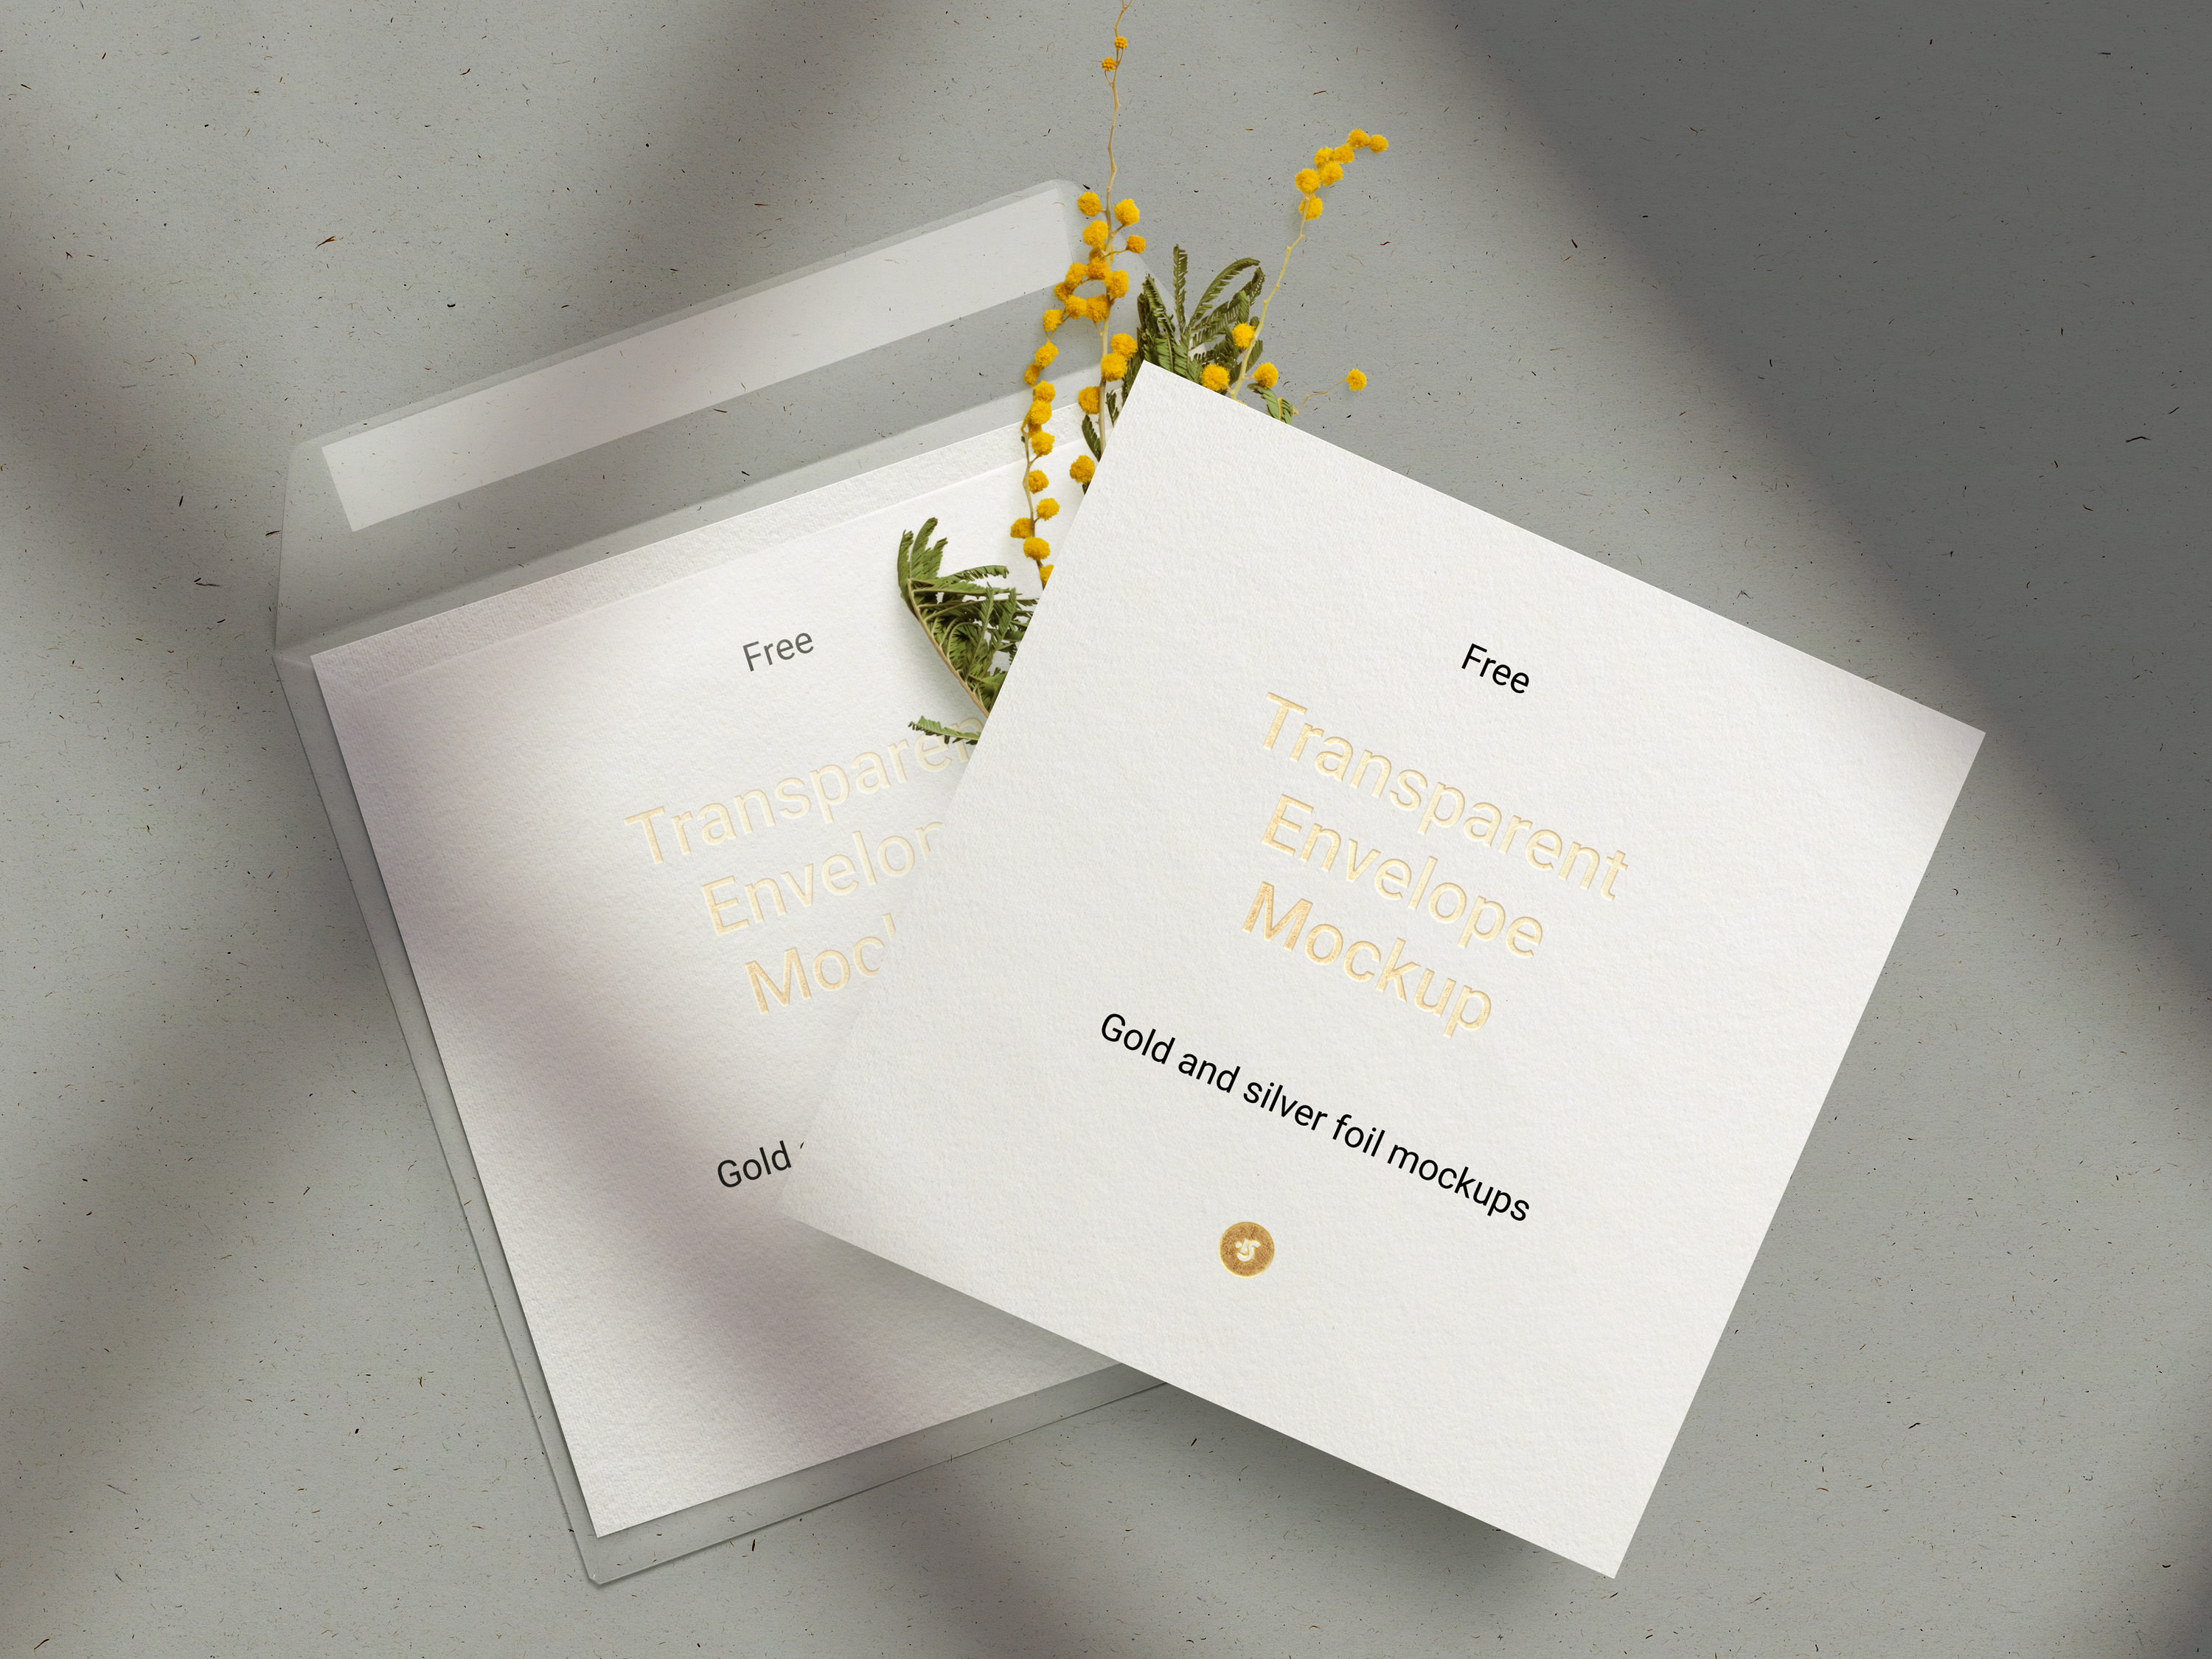 Free Envelope & Card Mockup